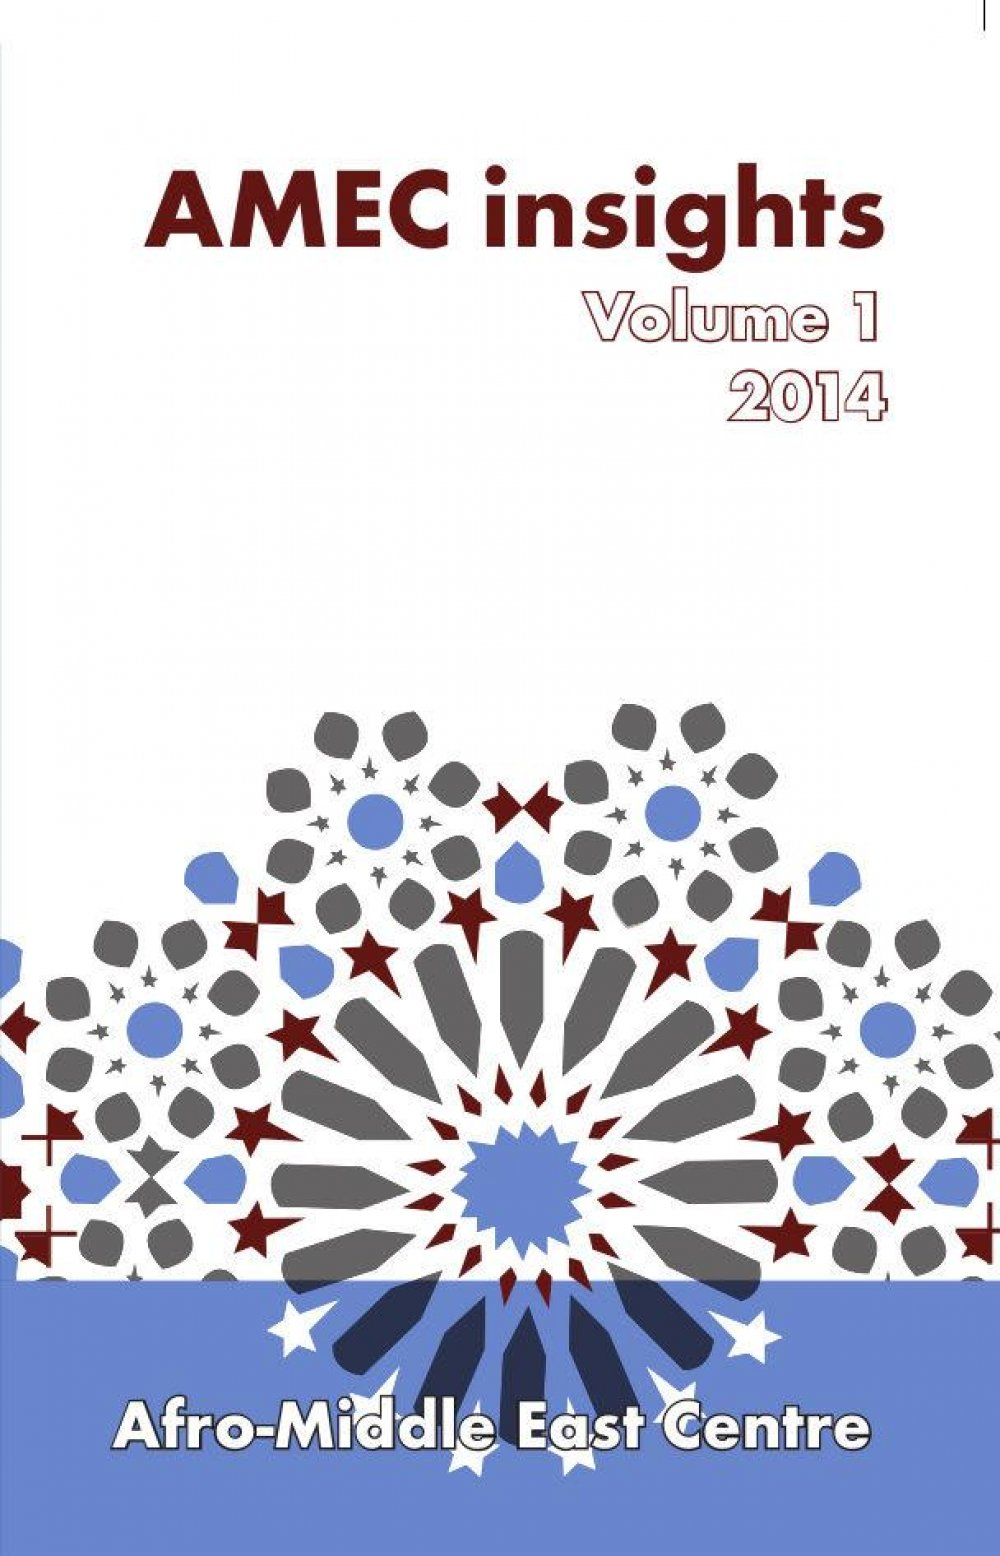 AMEC insights Volume 1 - 2014